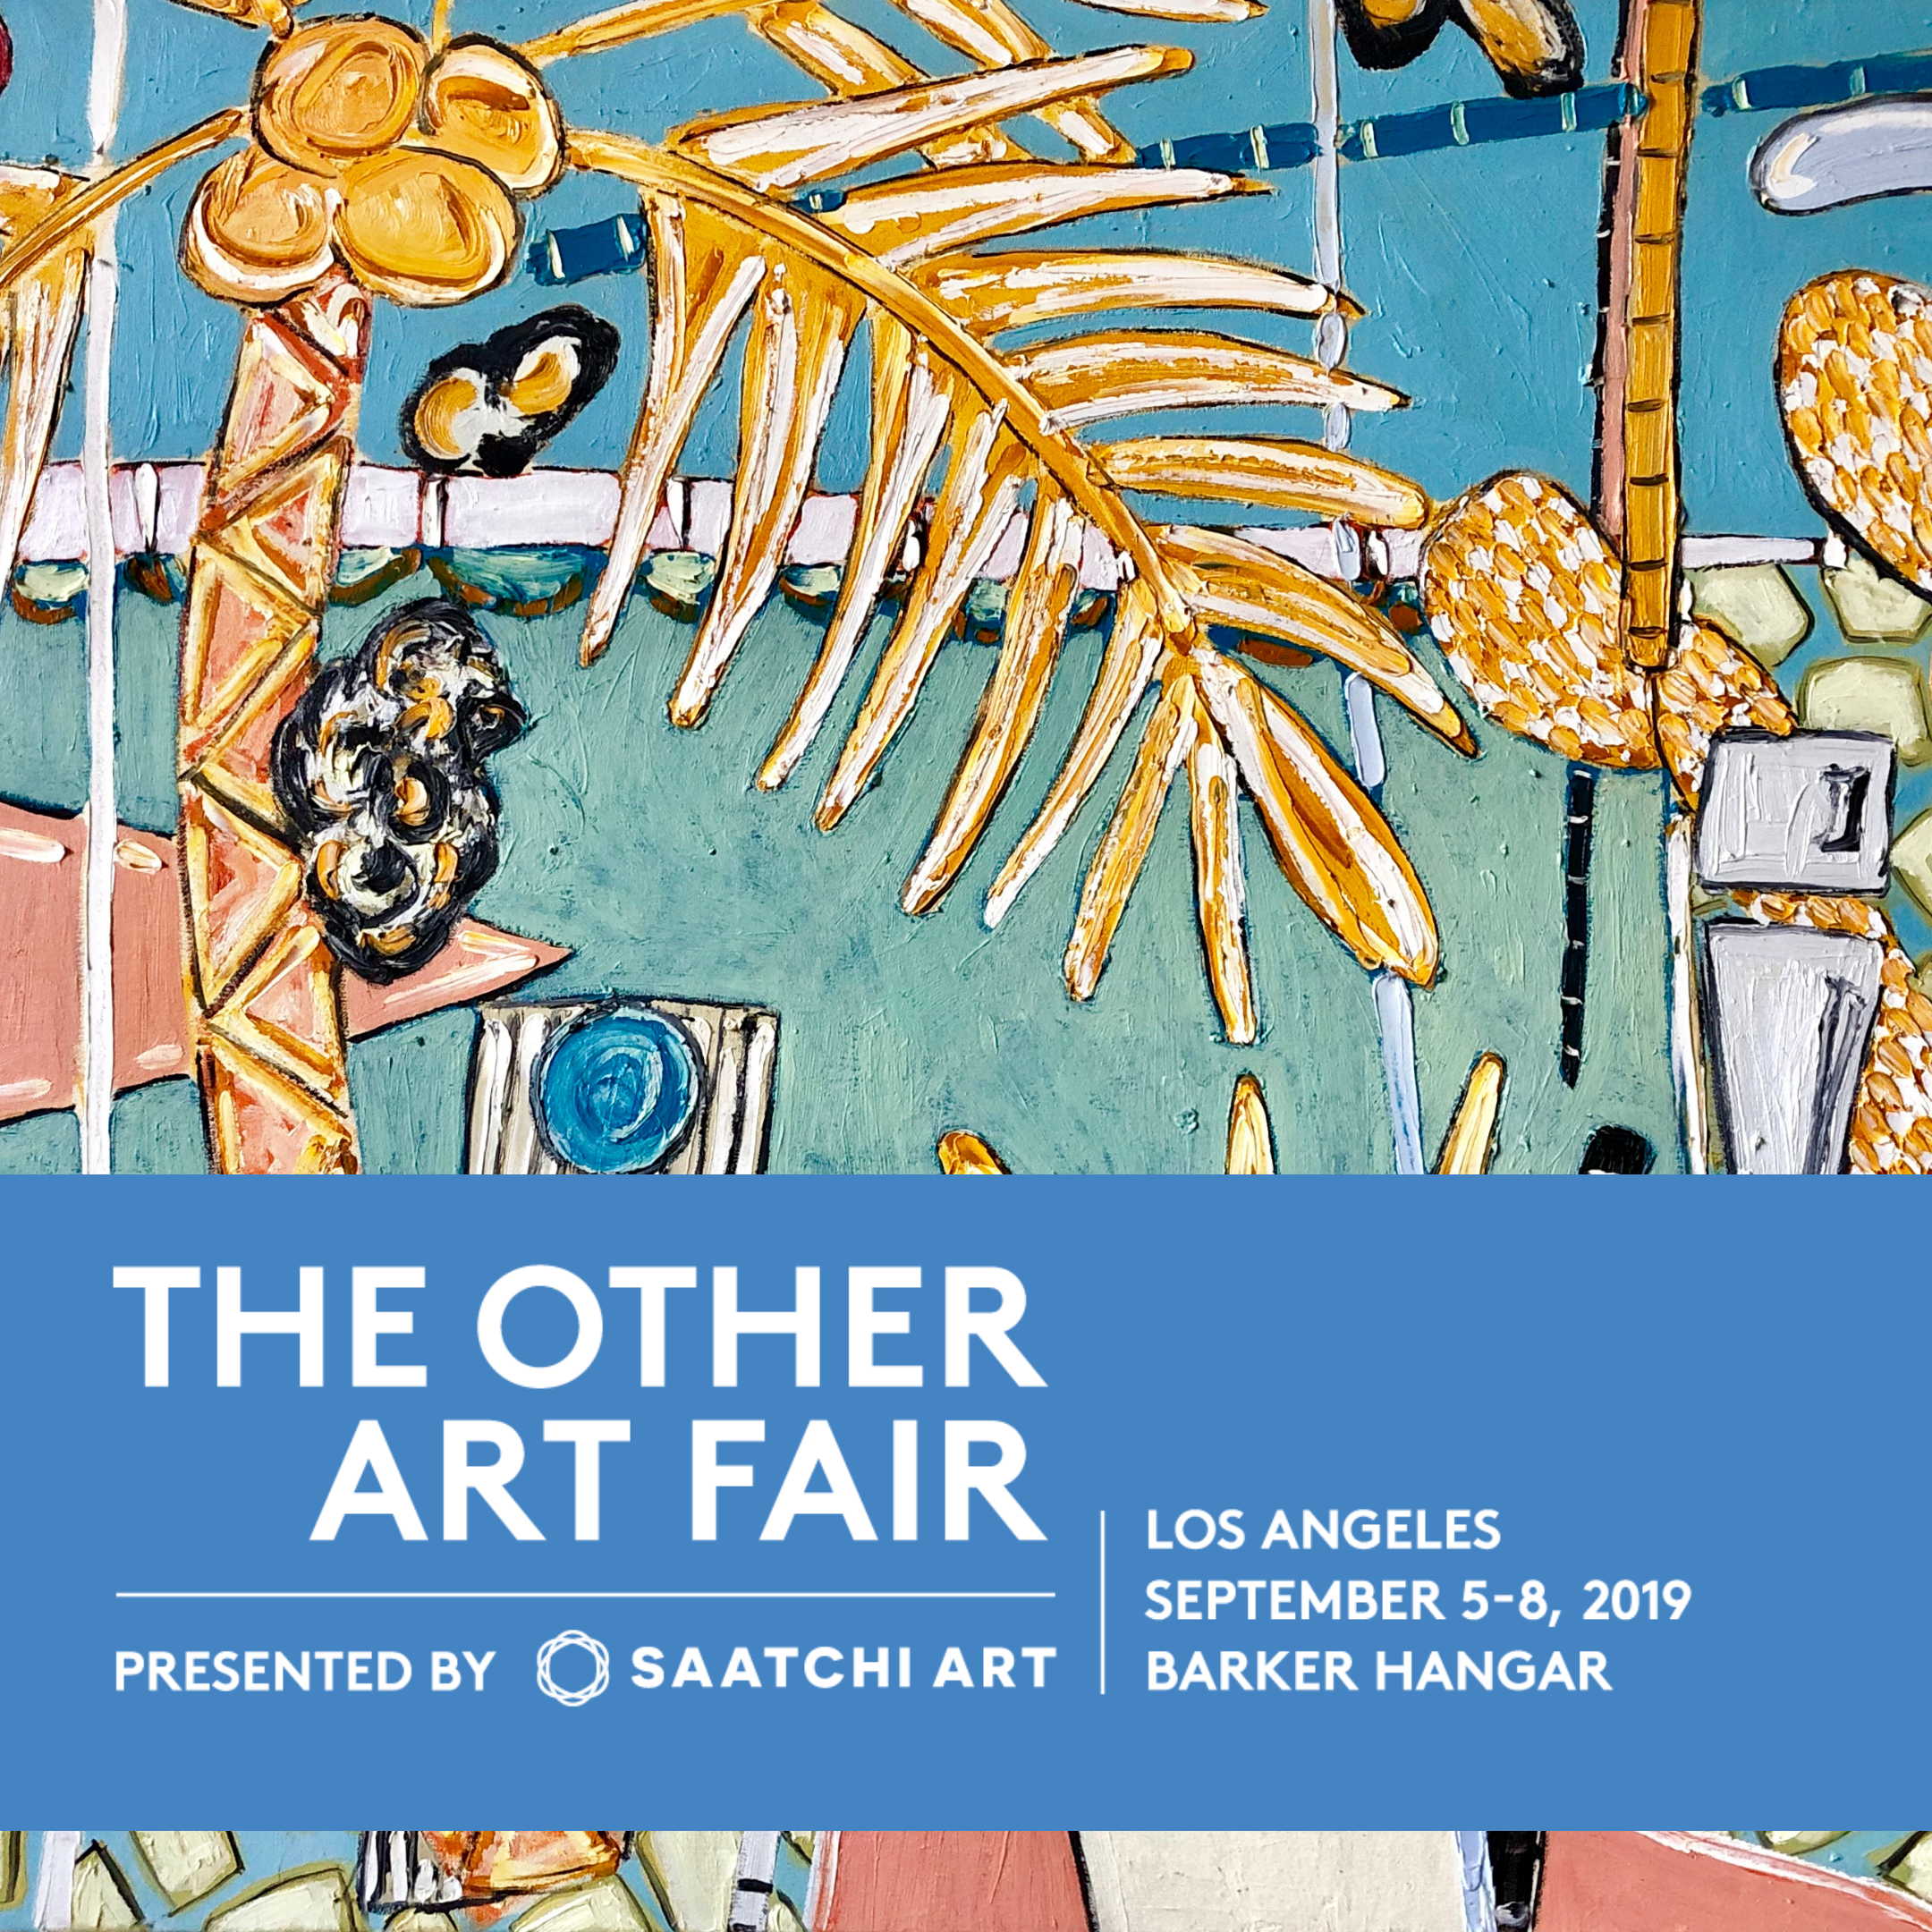 The Other Art Fair LA - I return to the Barker Hanger, Santa Monica, Sept 5th - 8th for the Other Art Fair LA. If you would like to attend use my promo code: 'ACumming' for complimentary tickets.